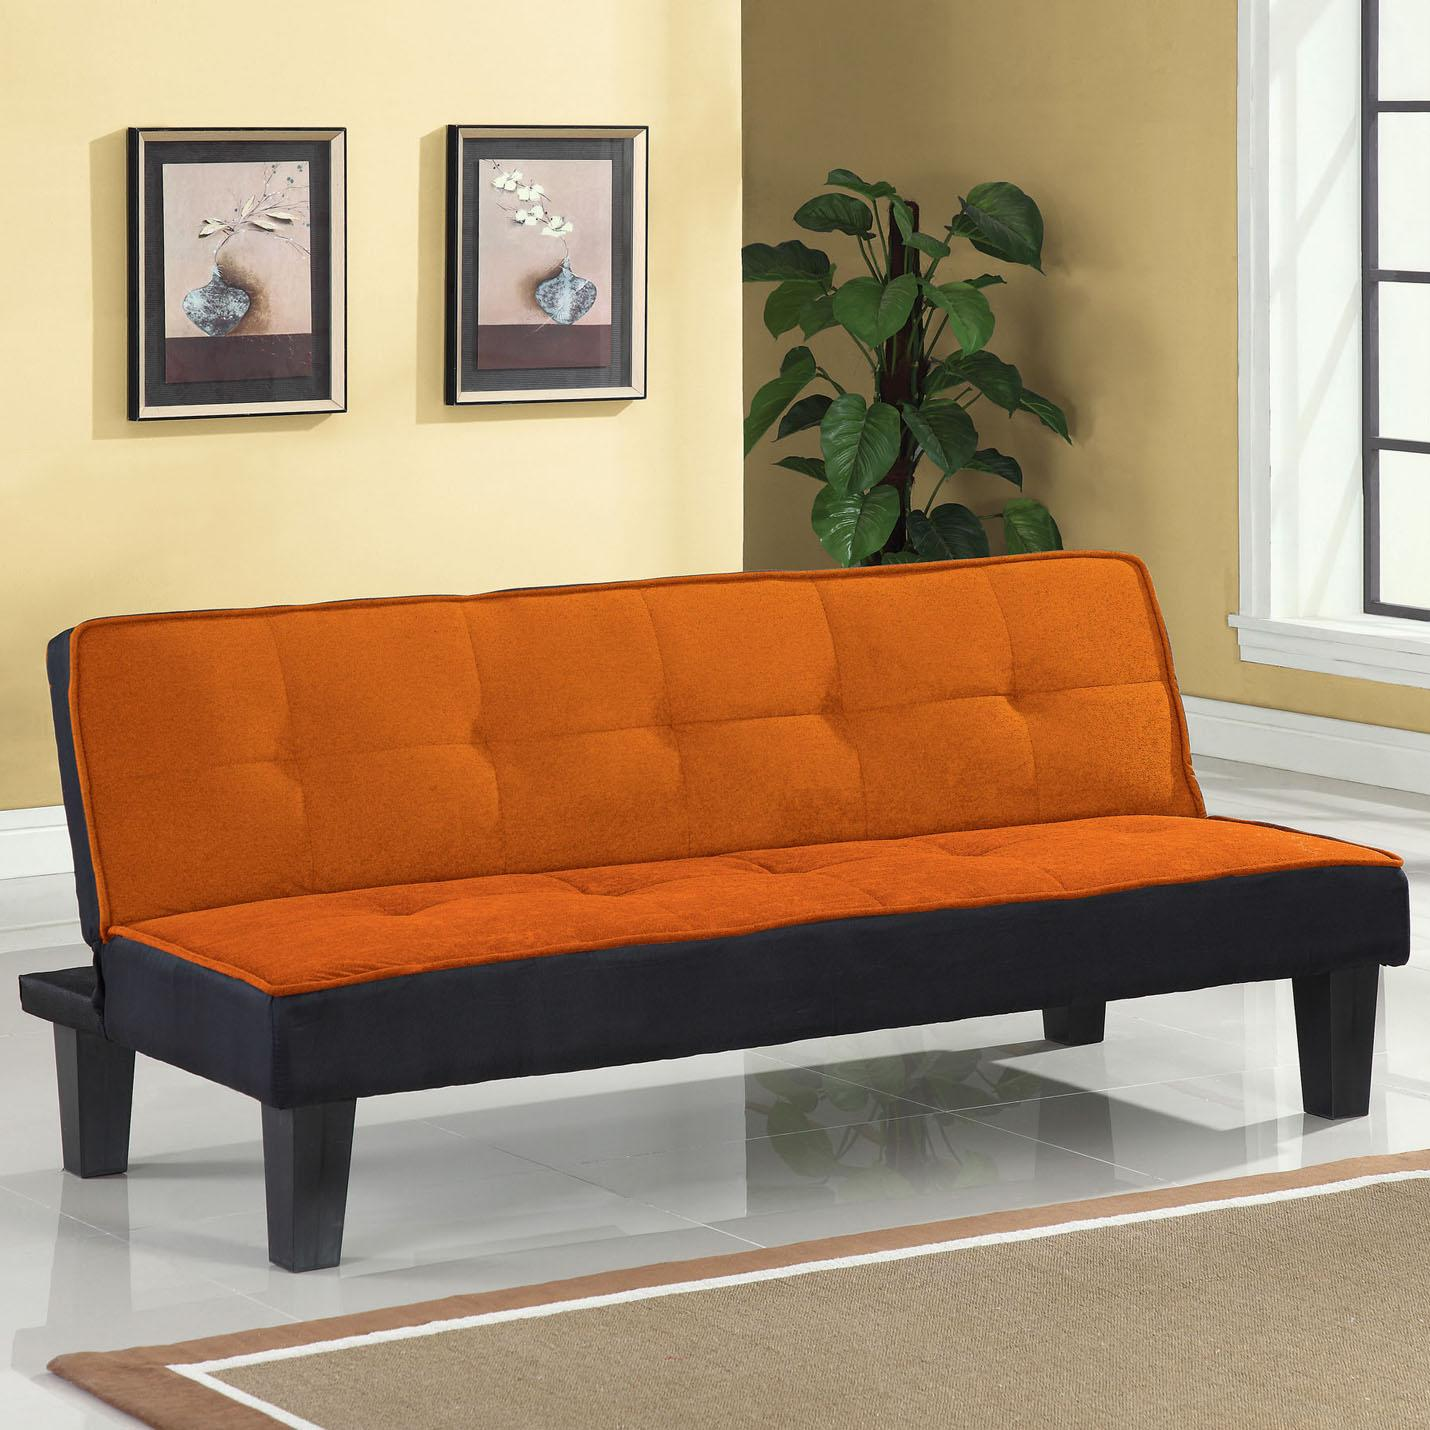 Acme Furniture Hamar  Adjustable Sofa - Item Number: 57029